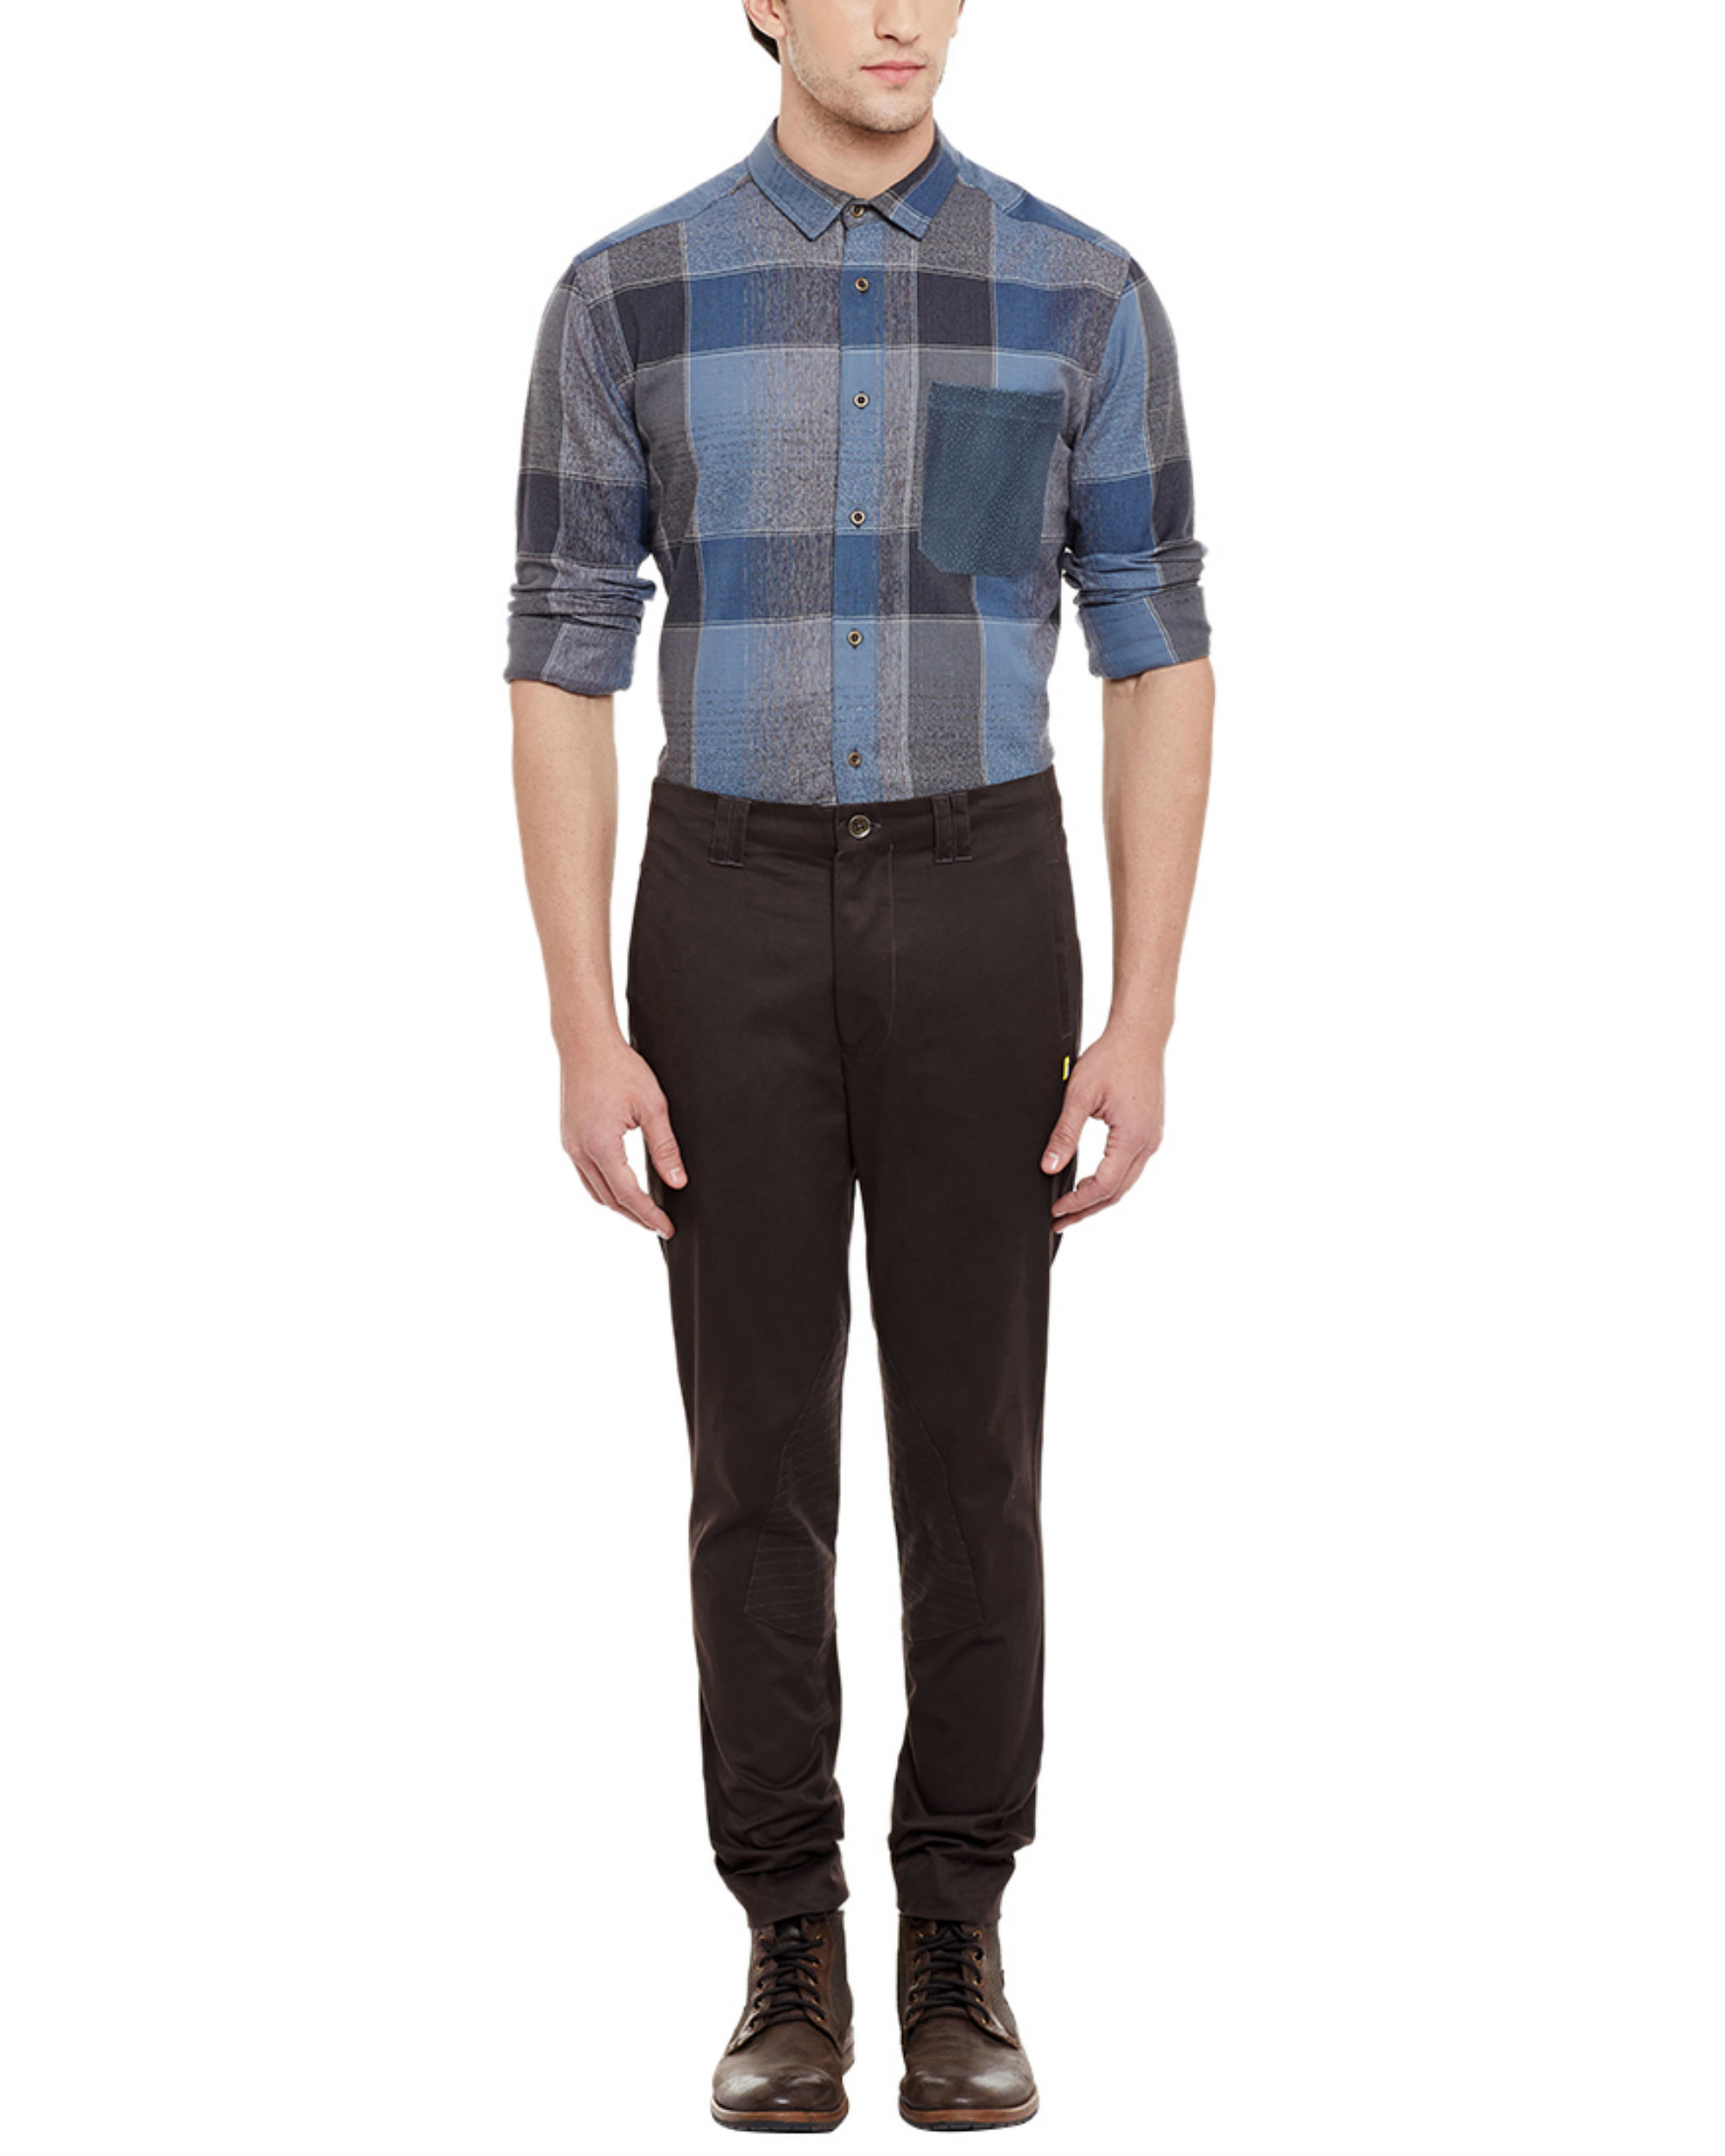 Brown riding trousers